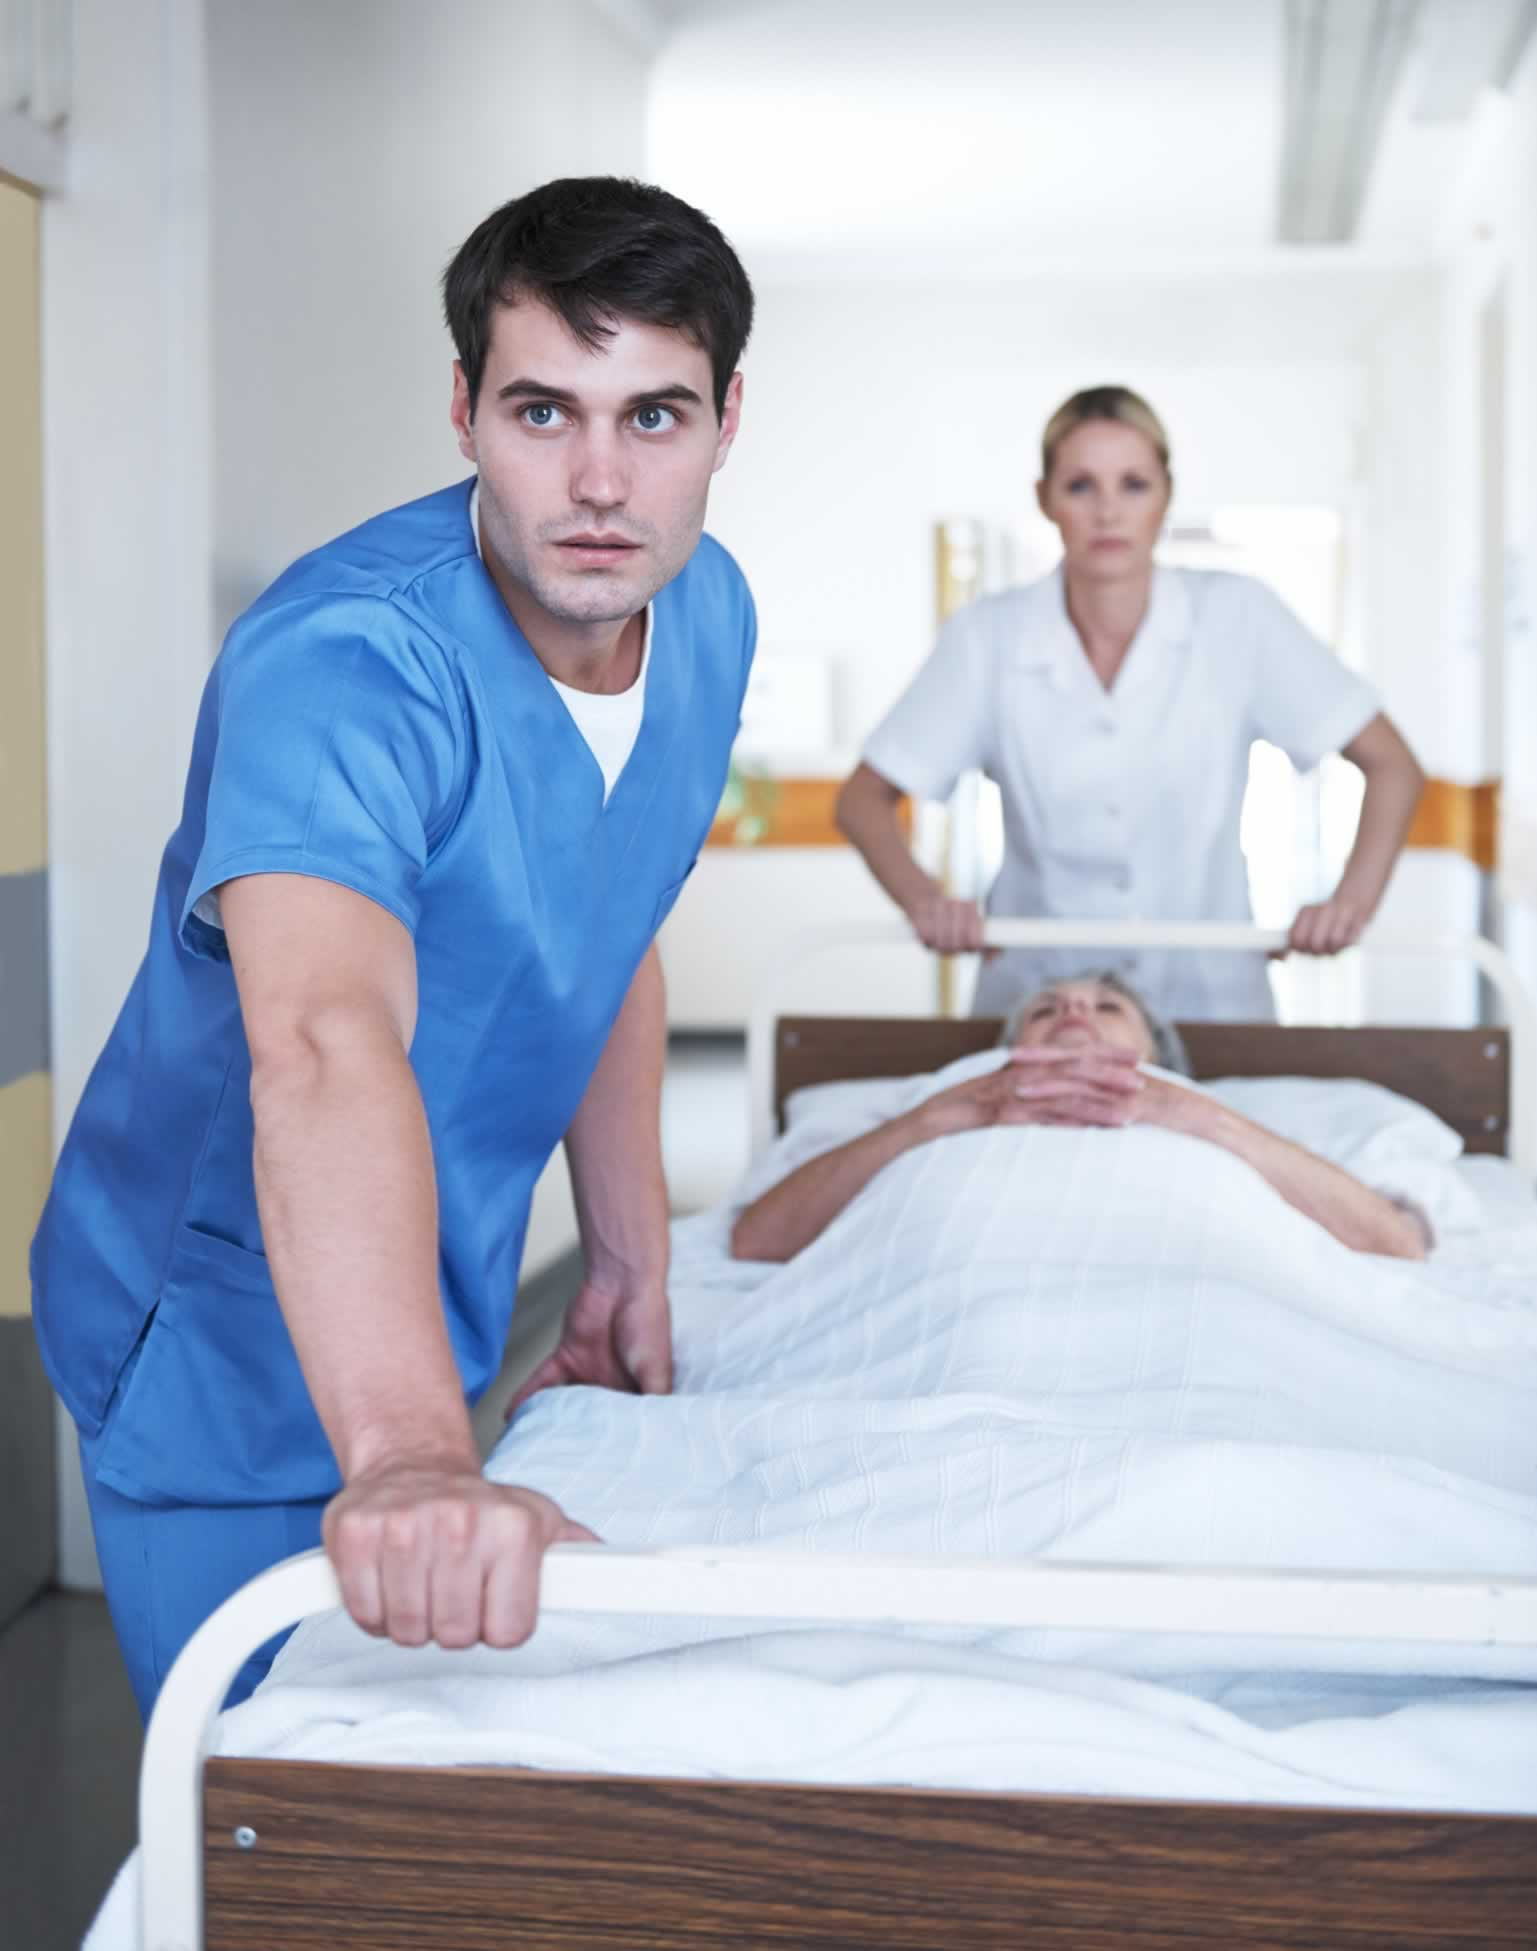 Two health workers in scrubs wheel a patient in a hospital bed.